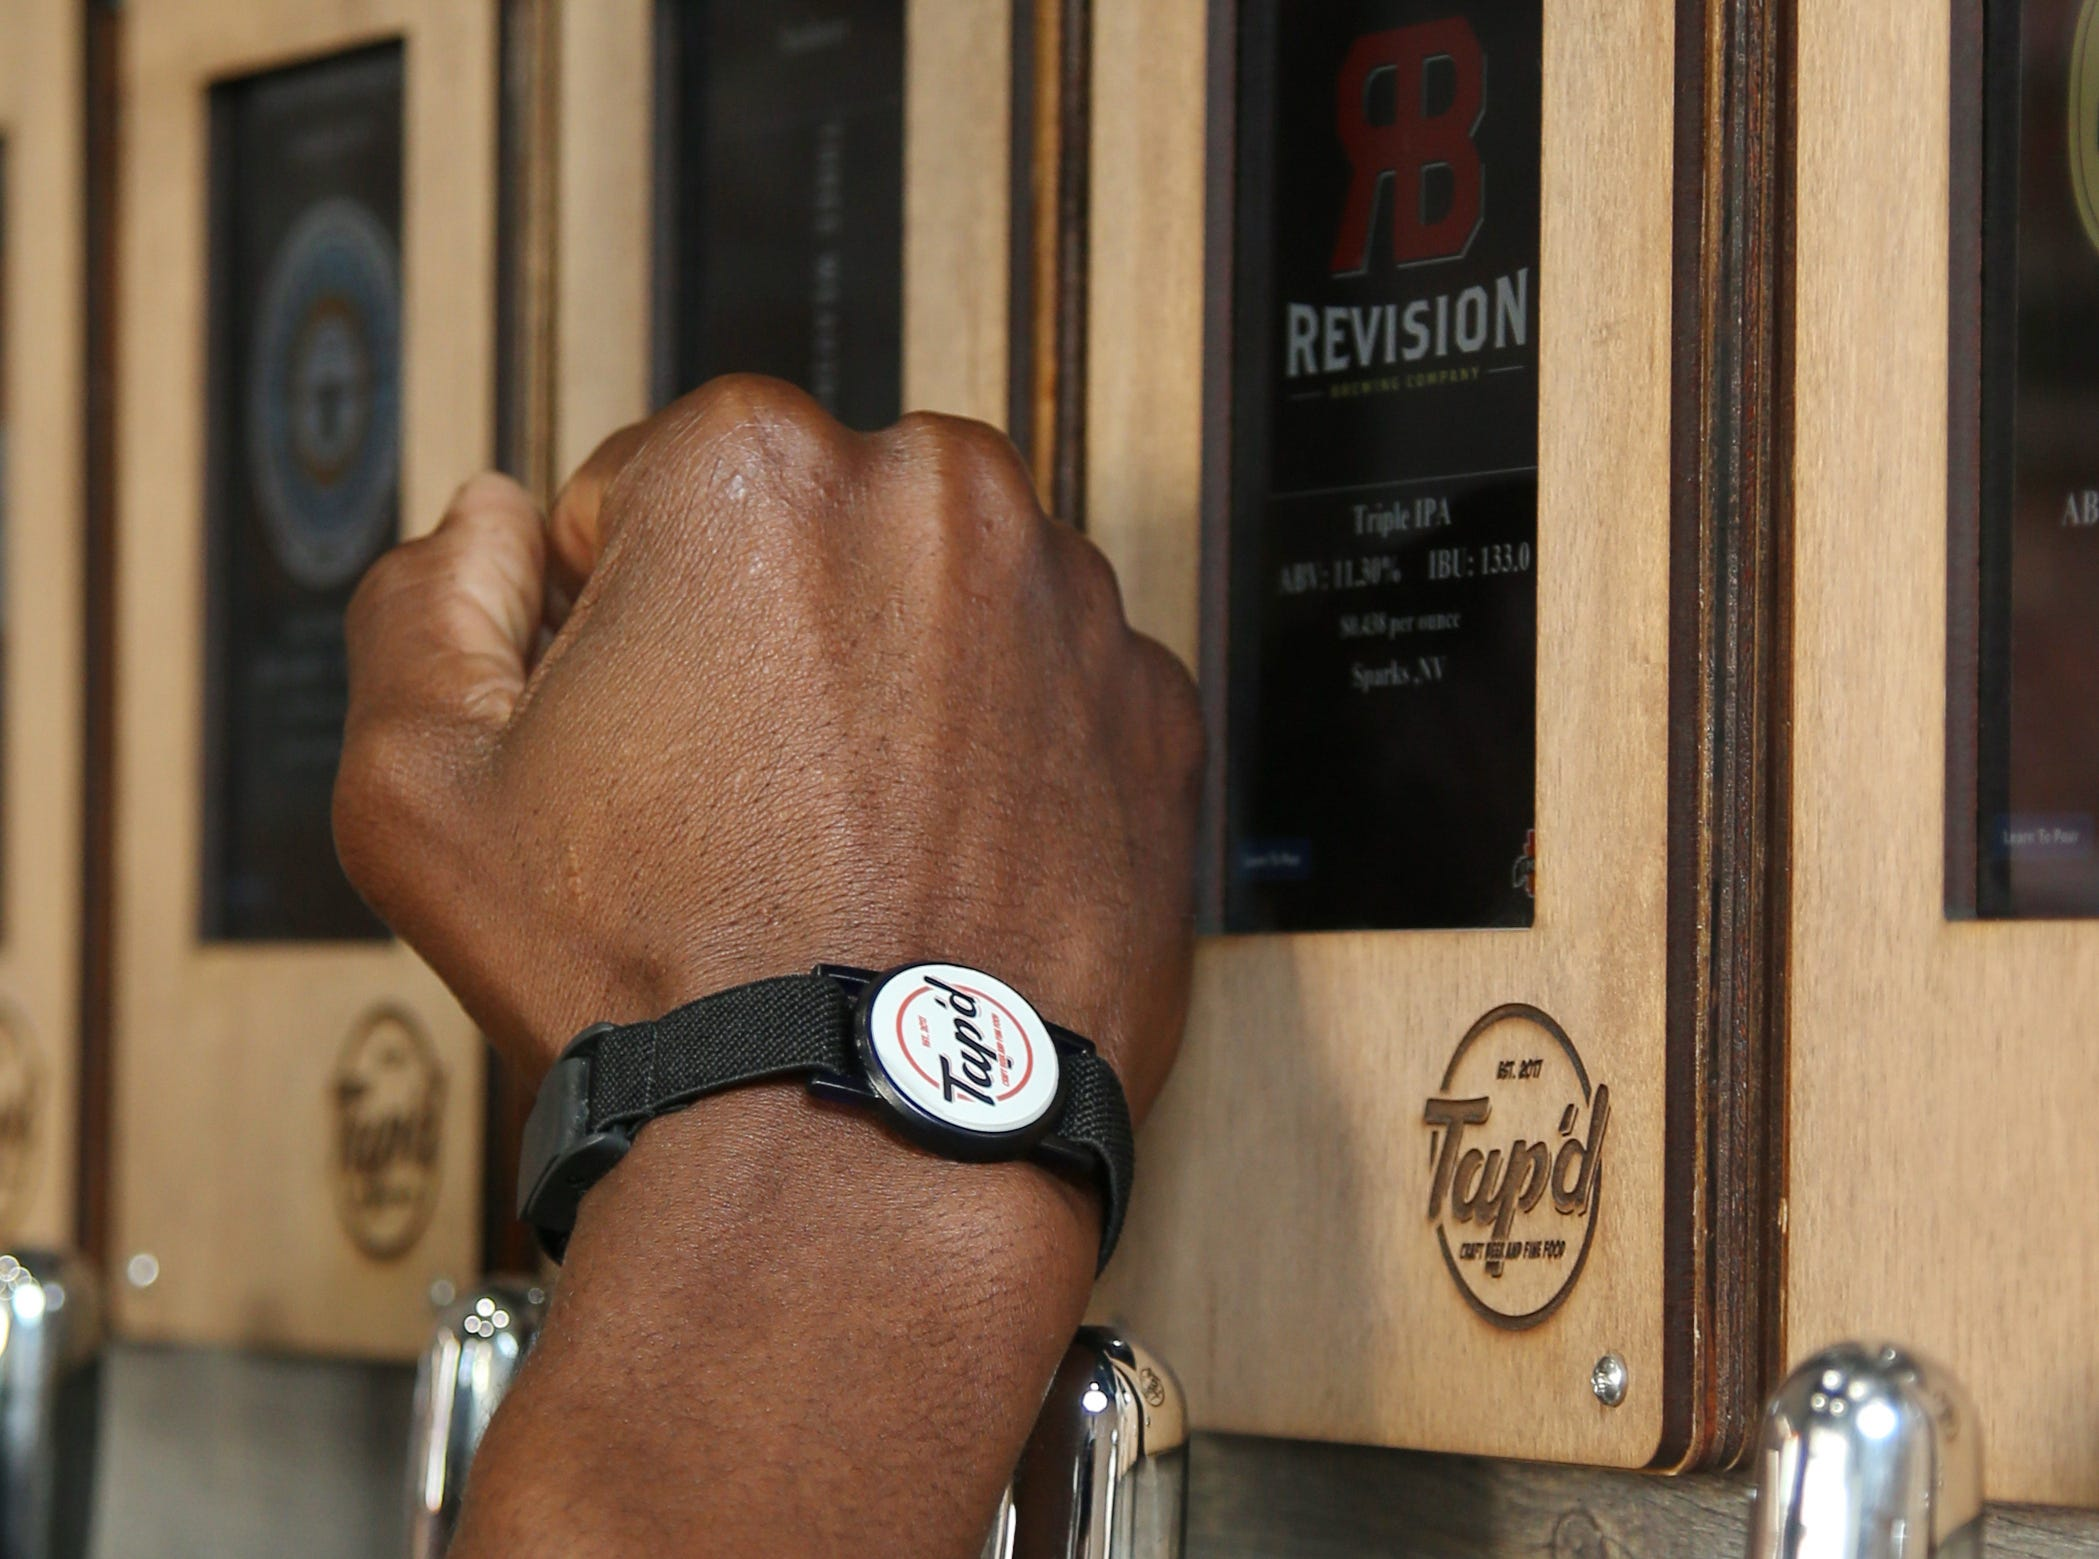 Robert Washington, CEO and co-owner of Tap'd Ventura, demonstrates how the business' patrons activate self-serve taps with the use of an RIFD wristband. The combination taproom and restaurant offers beer, wine and hard ciders and kombuchas on 43 taps.